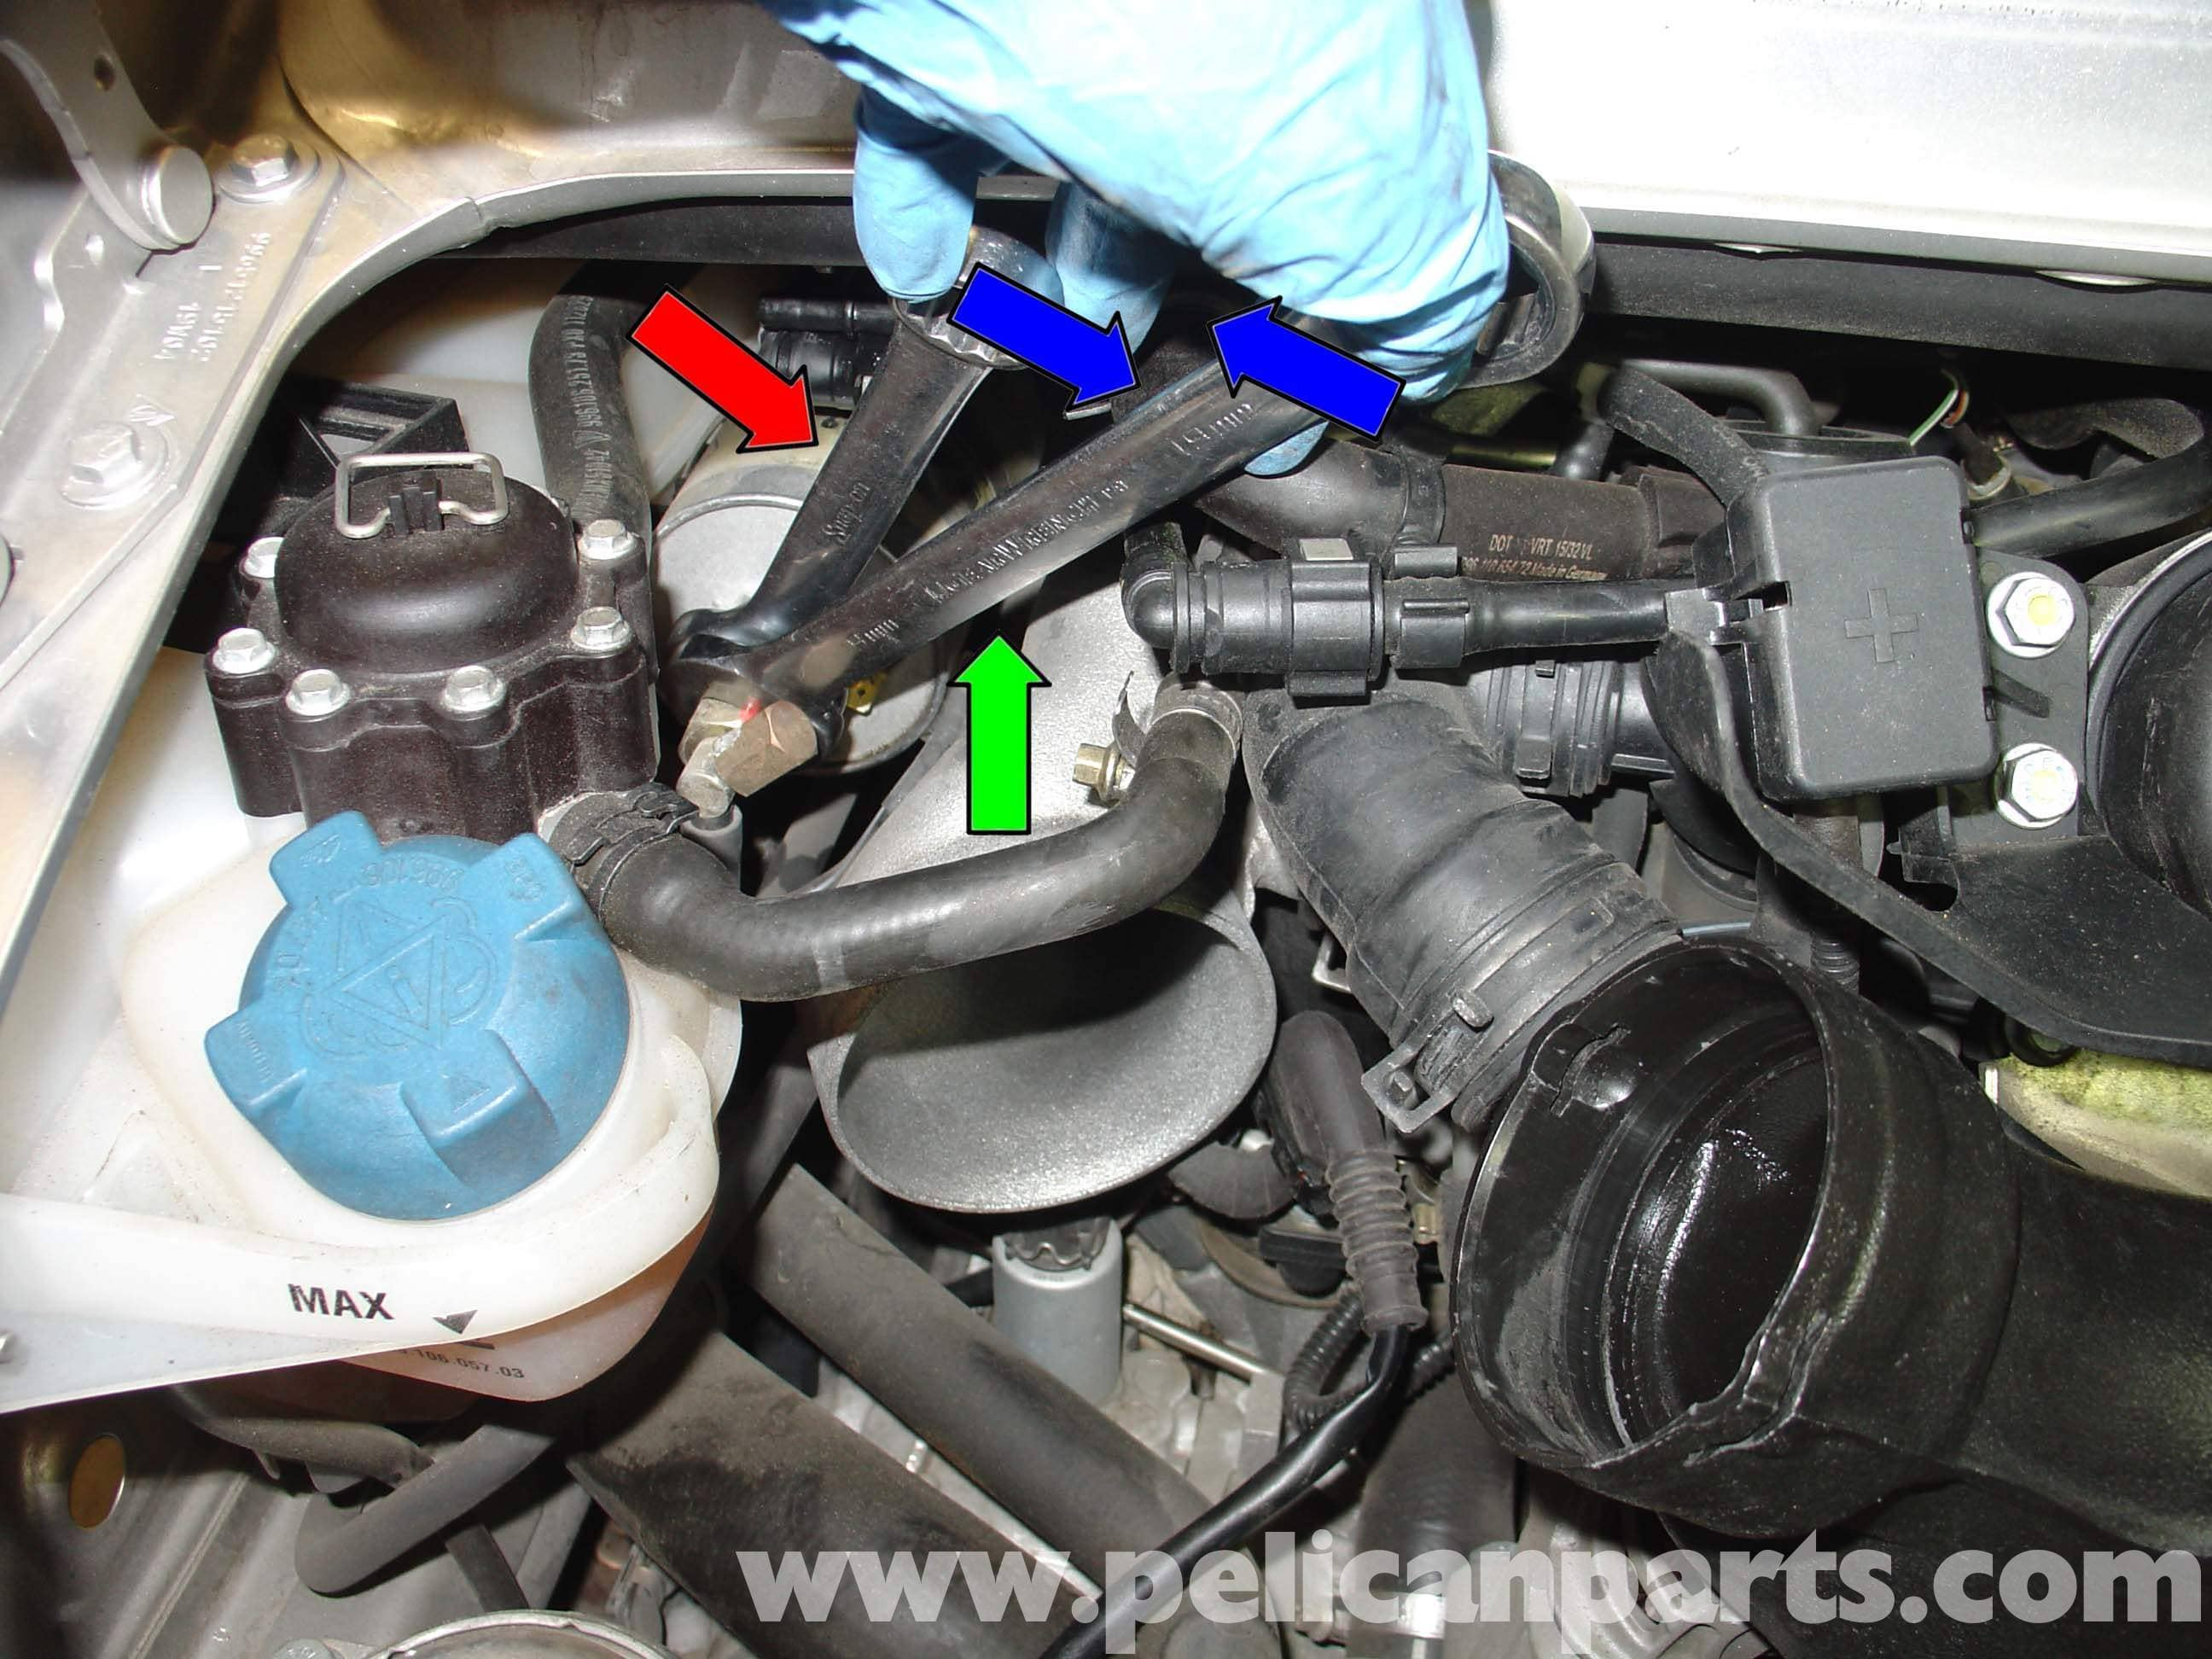 Porsche 996 Turbo Fuel Filter Replacement Gt2 2002 2005 07 Mustang Large Image Extra